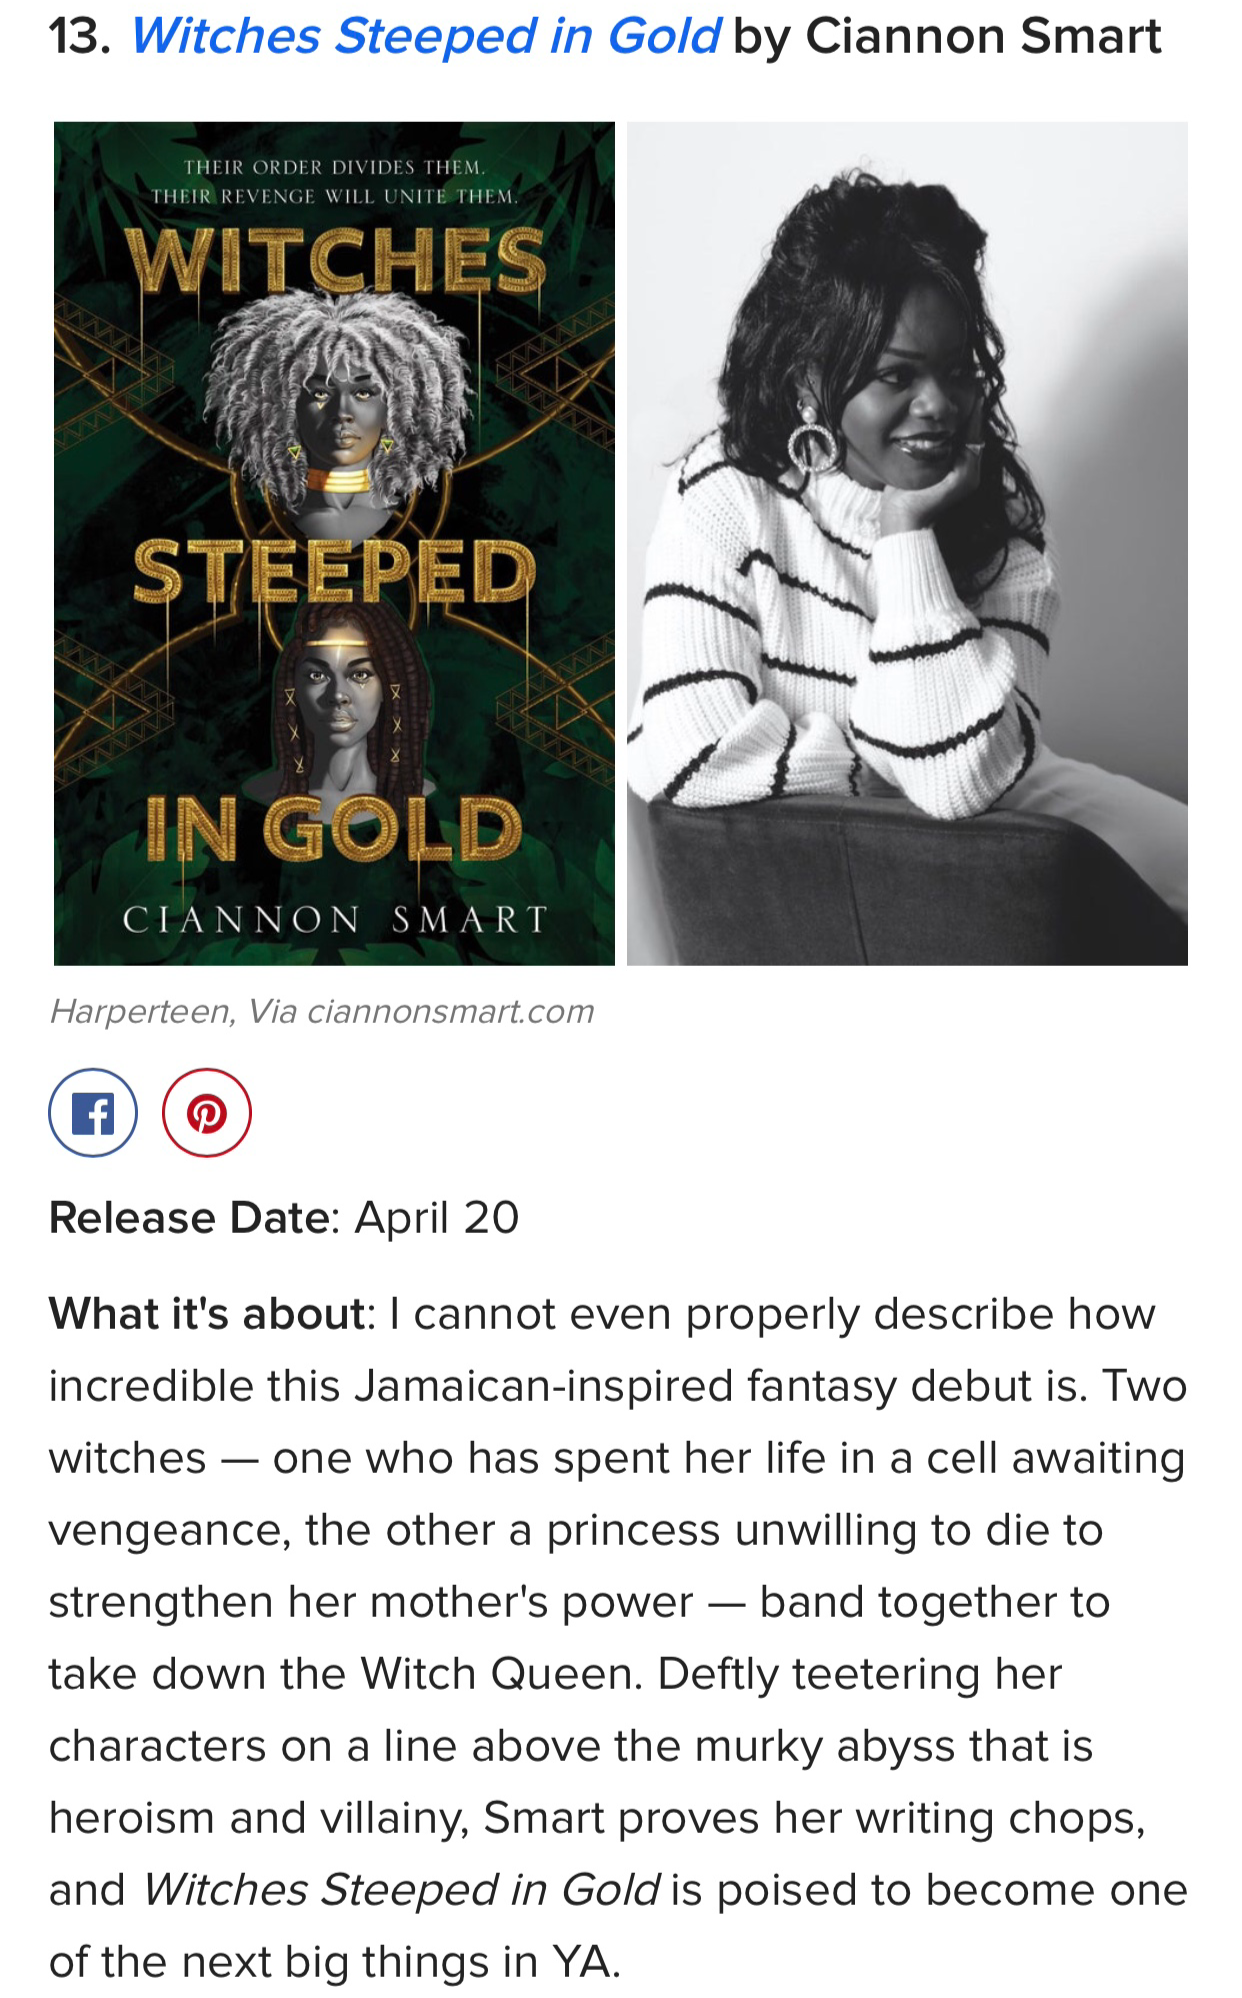 """I cannot even properly describe how incredible this Jamaican-inspired fantasy debut is."""